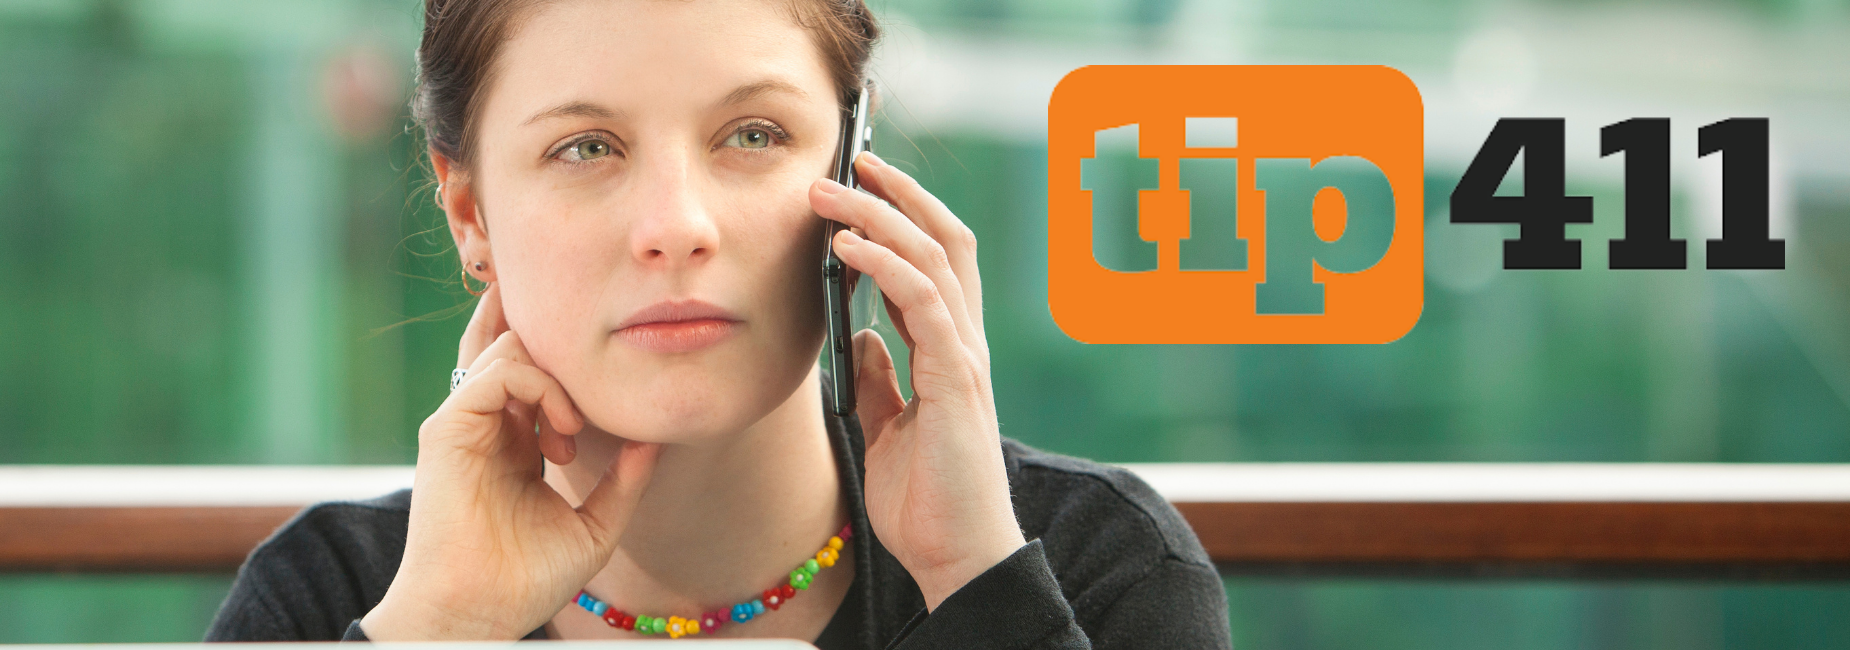 young woman on cell phone with tip 411 logo on top of the image